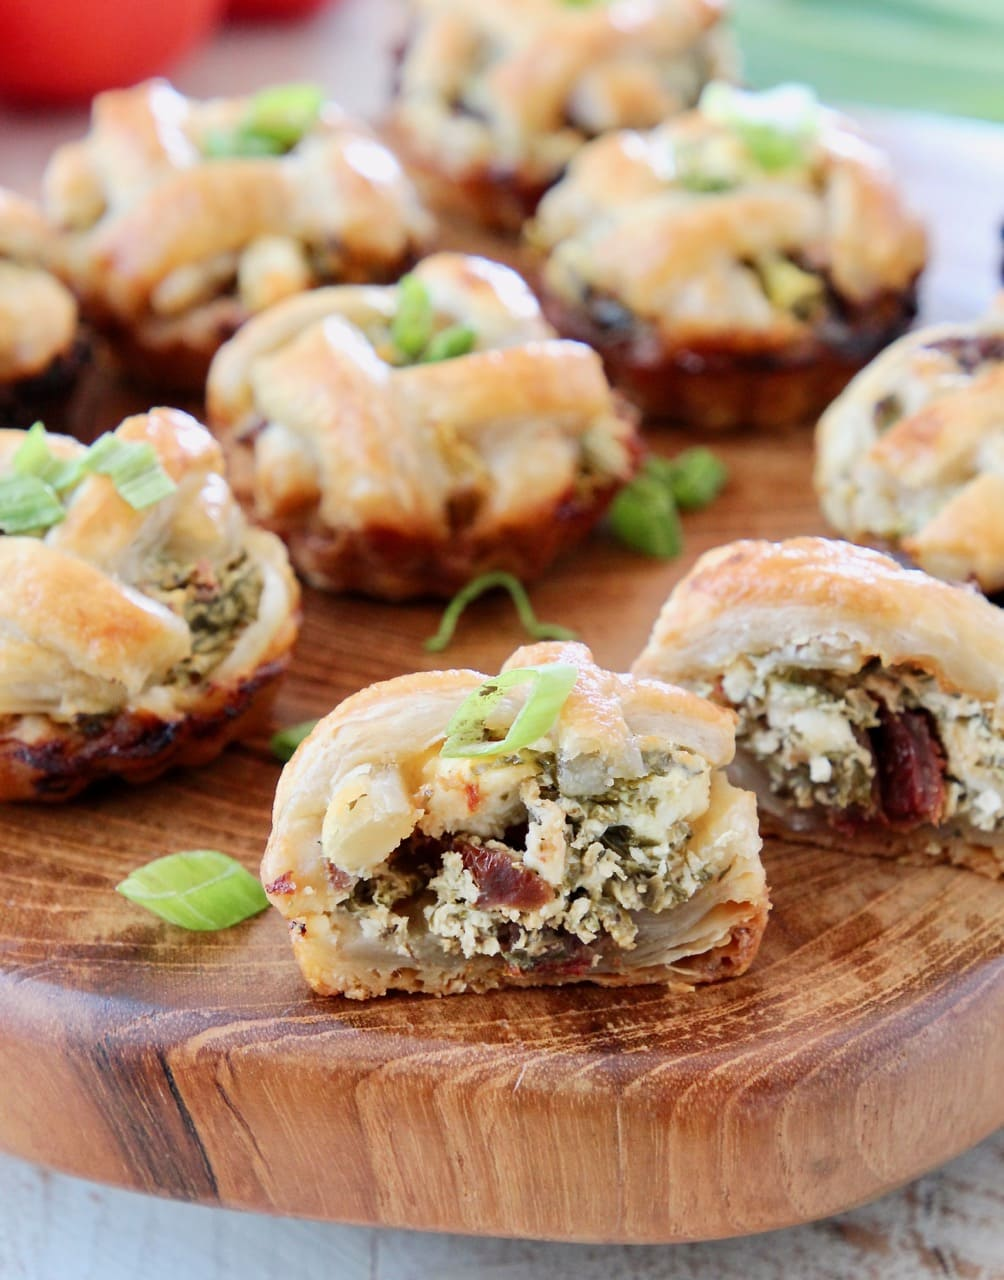 Mini Pies filled with Spinach, Feta Cheese and Sun Dried Tomatoes